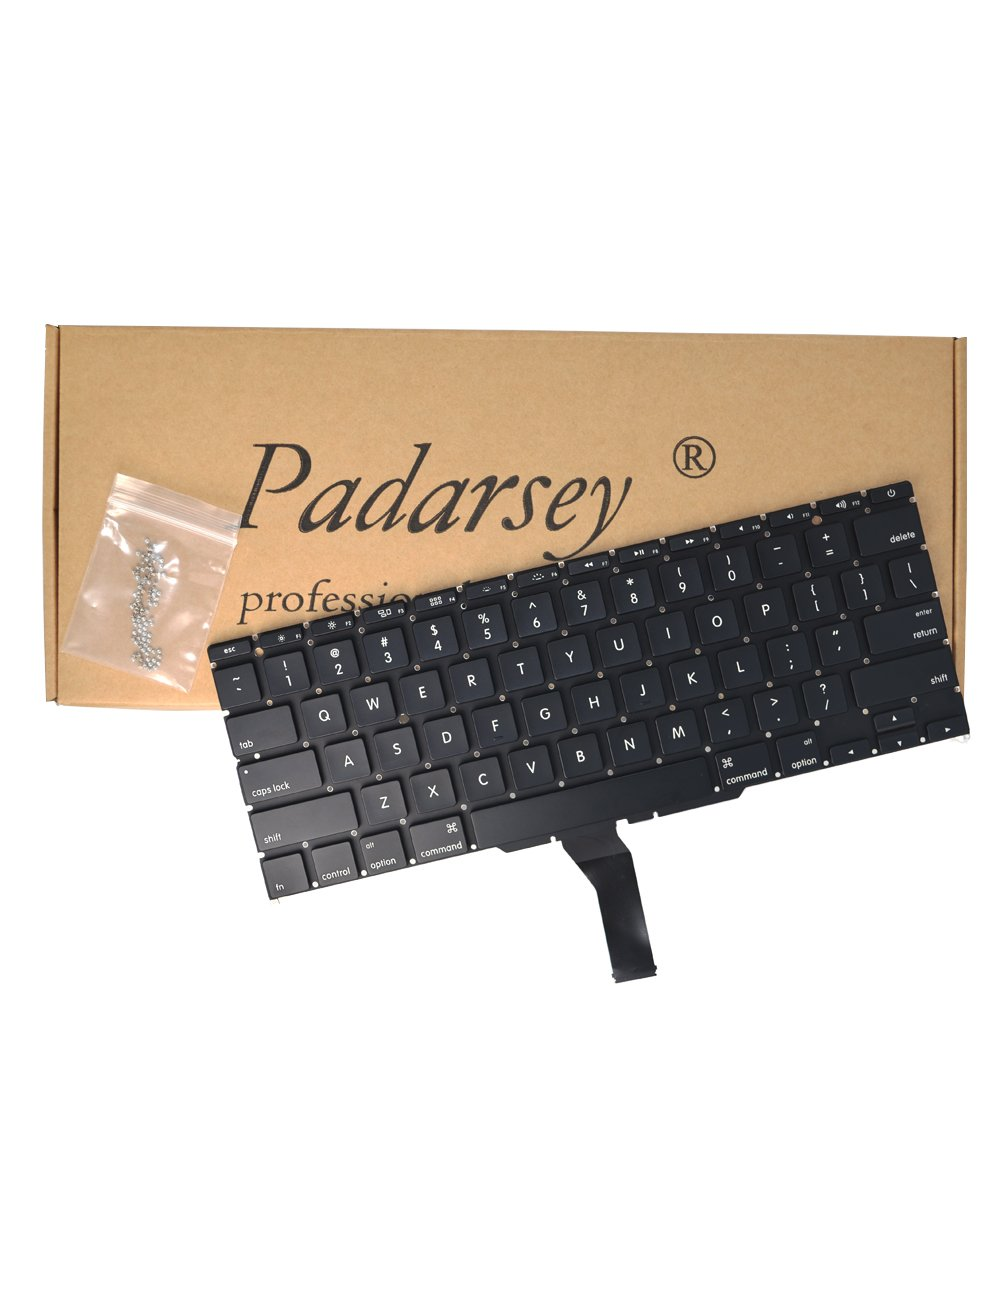 Padarsey New Laptop Black US Keyboard fits For Macbook Air A1370 A1465 11-Inch 2011 2012 2013 2014 2015 MD711 MD712 MD223 MD224 MC968 MC969